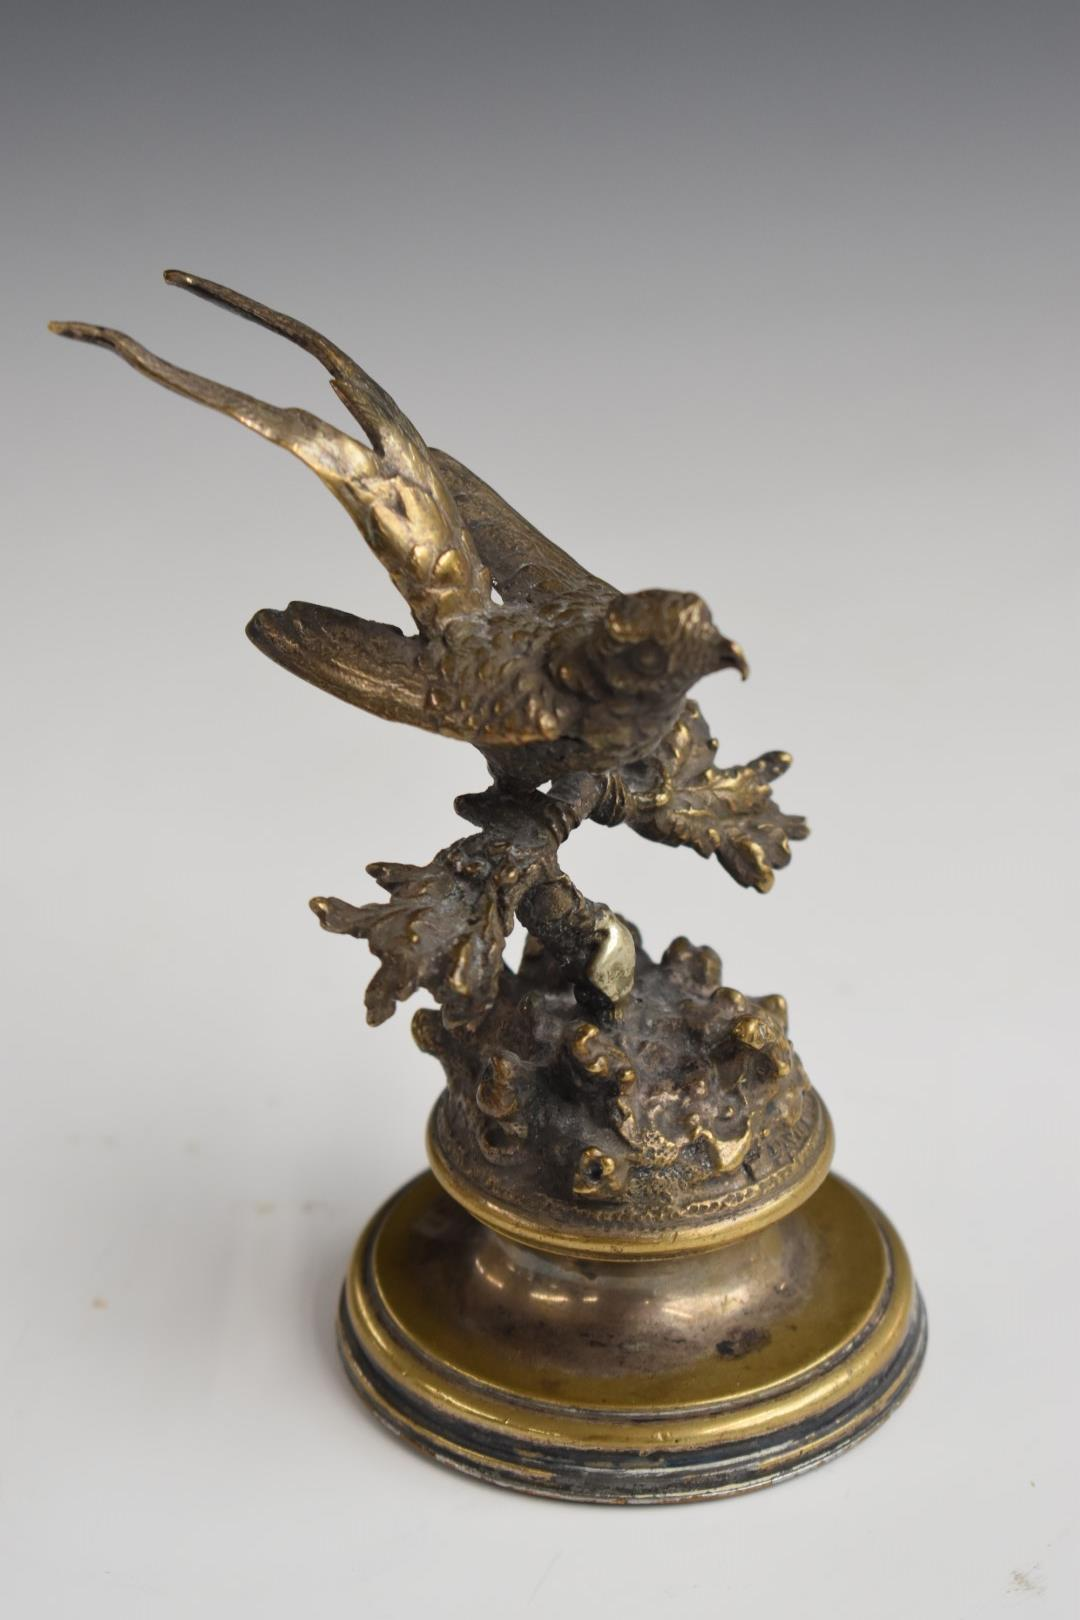 Ferdinand Pautrot (1832-1874) silver plated study of a bird on foliage, signed to edge, H12cm - Image 2 of 6